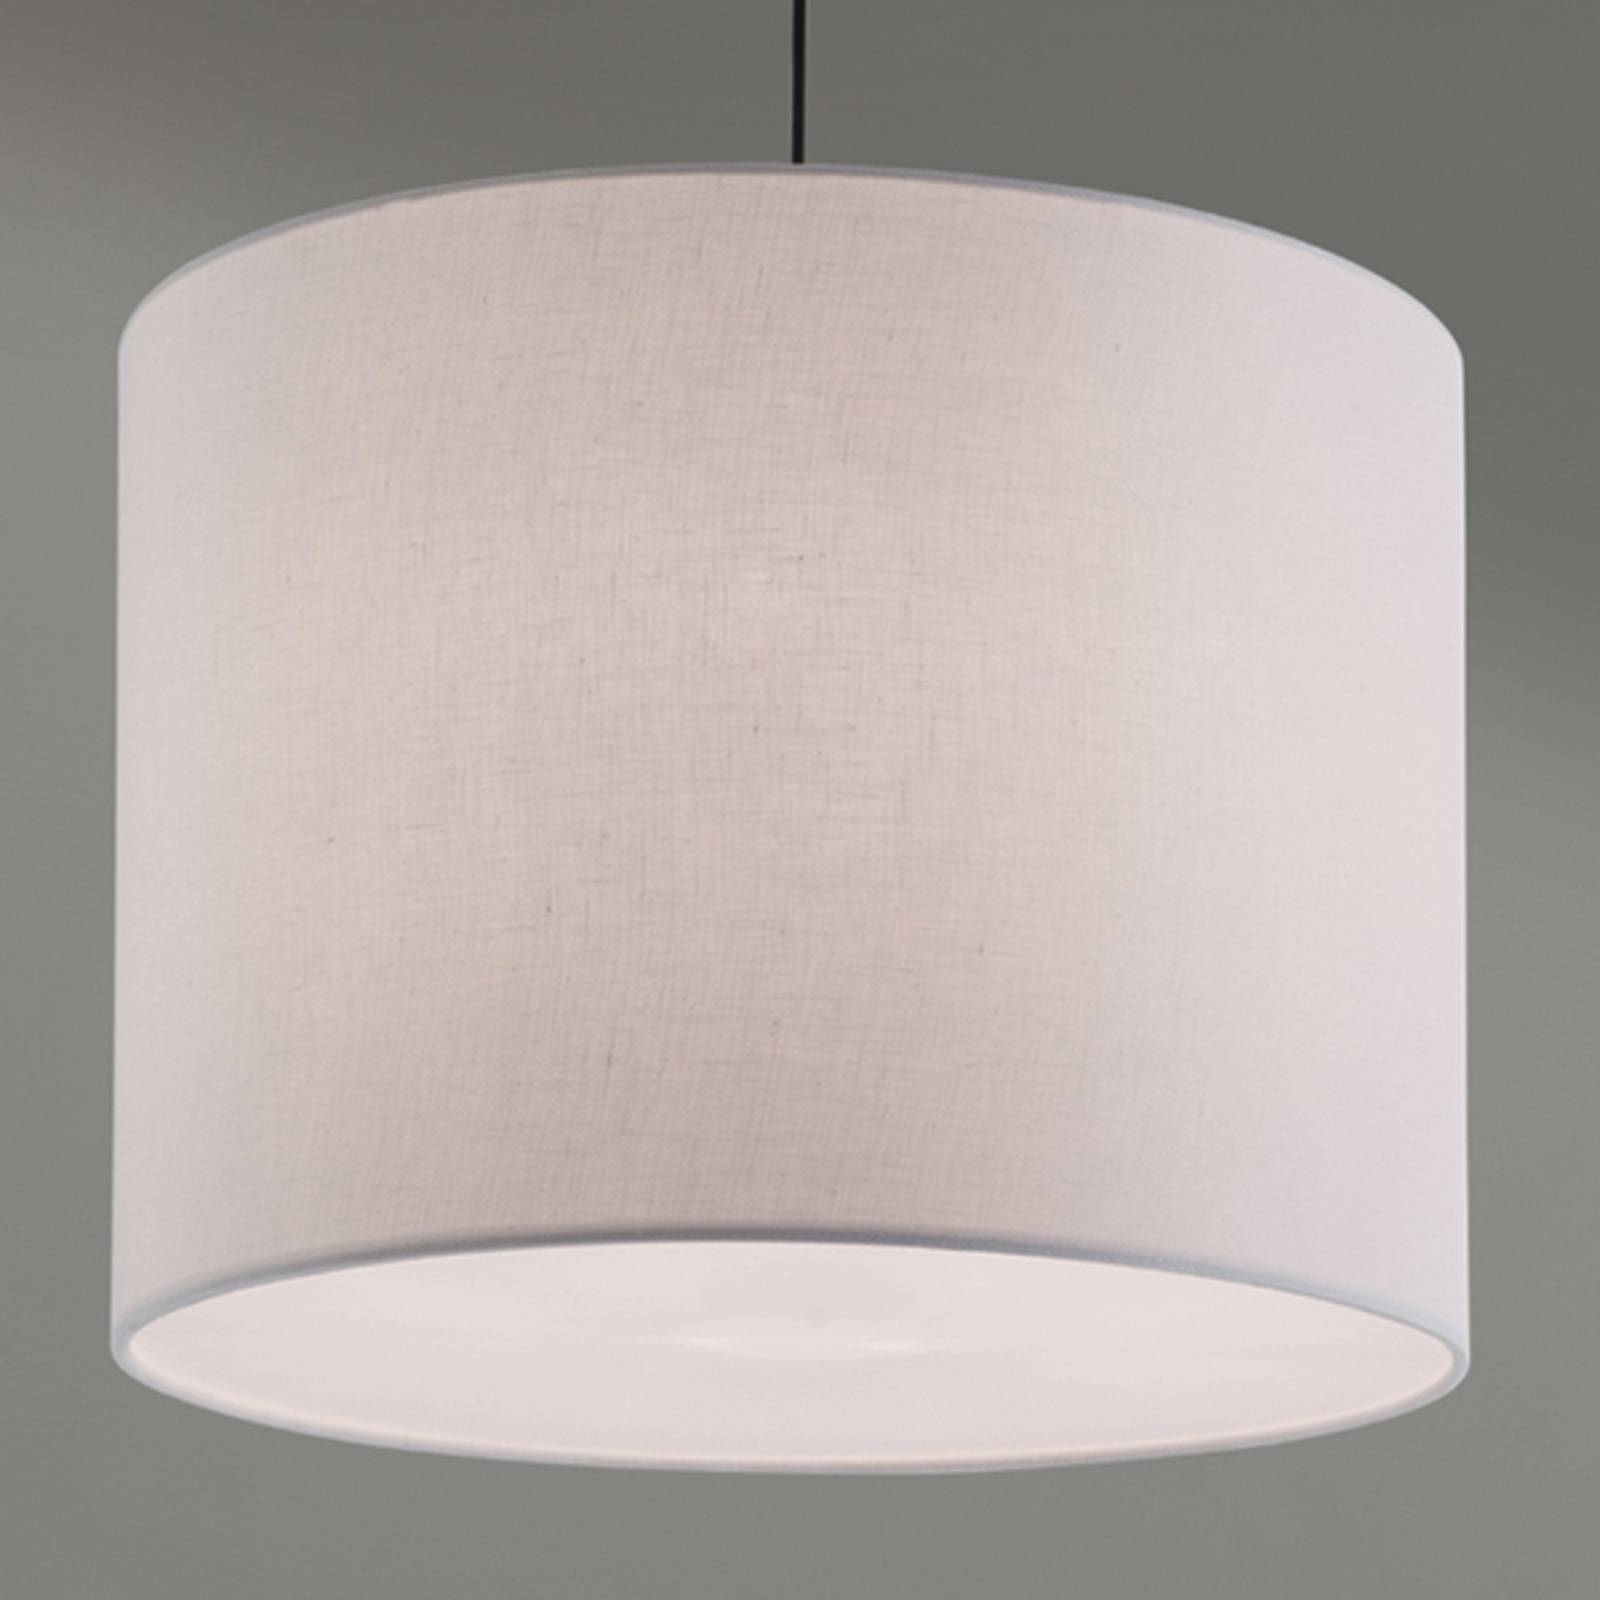 Hanging light Artak with a white fabric lampshade from Orion